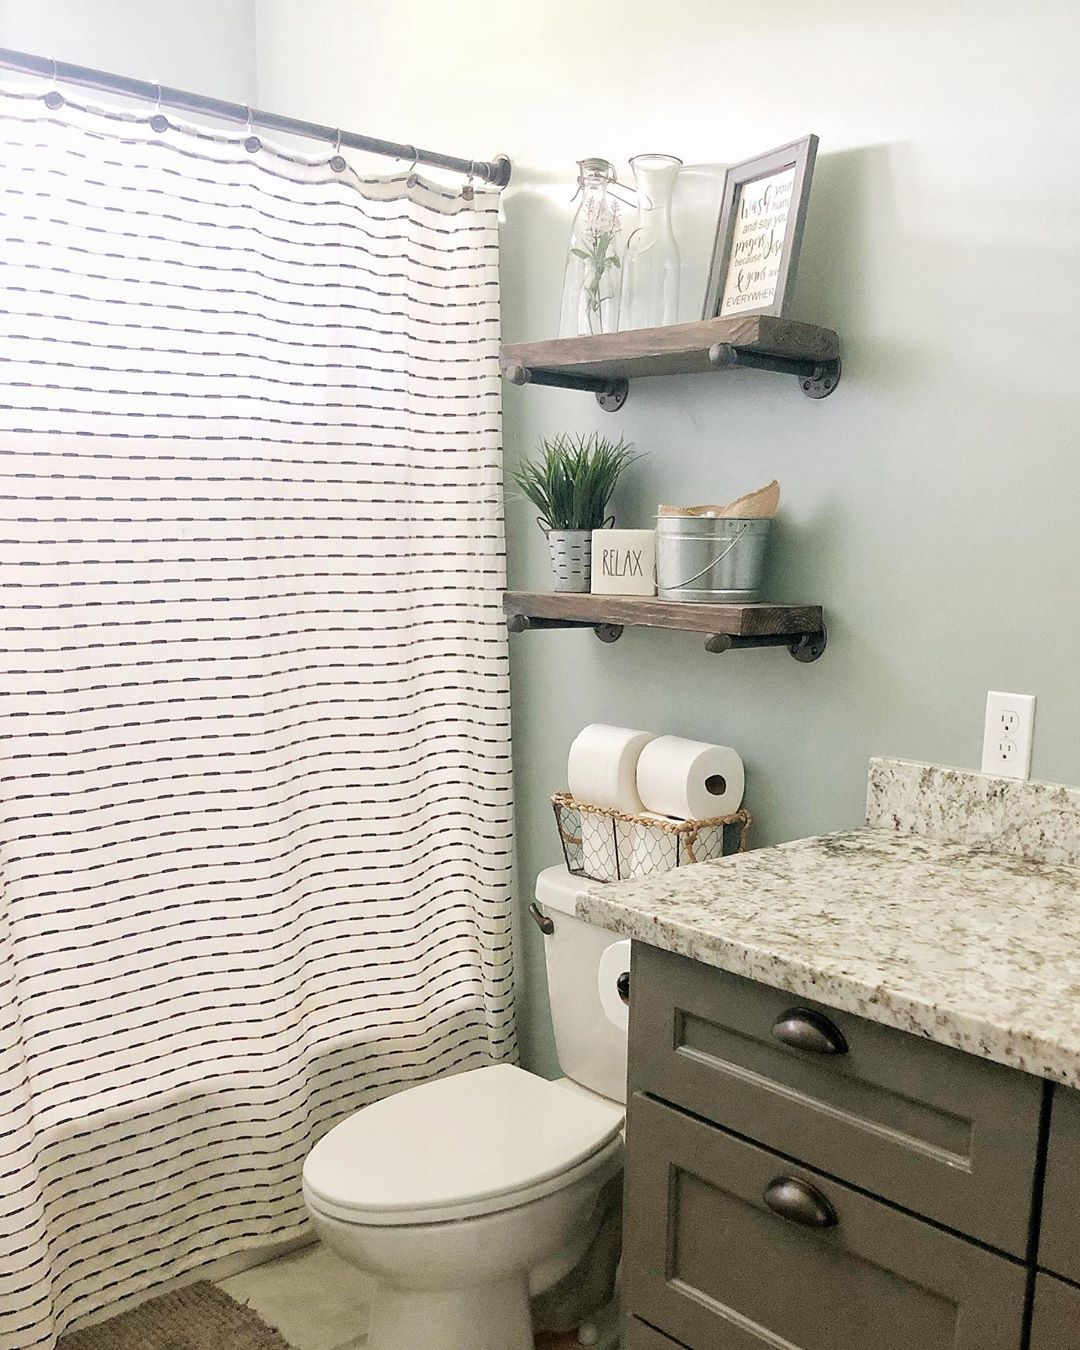 This super cute and simple shower curtain goes great in ...